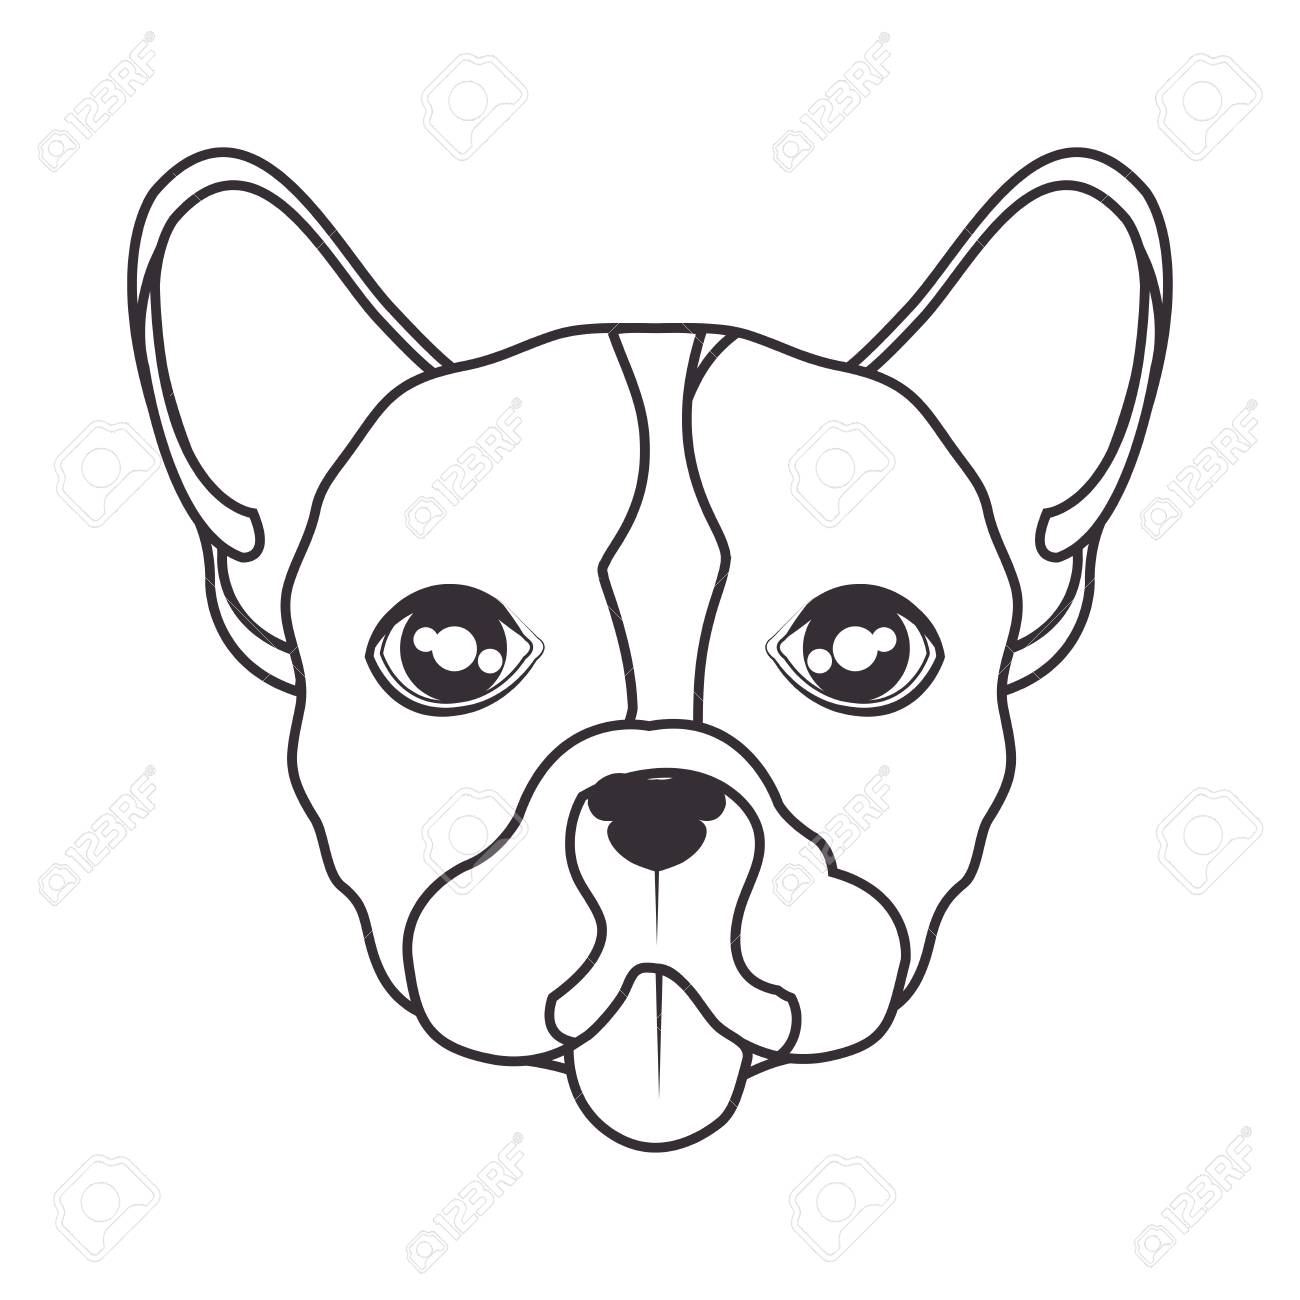 1300x1300 Hand Draw Face Dog Icon Vector Illustration Eps 10 Royalty Free